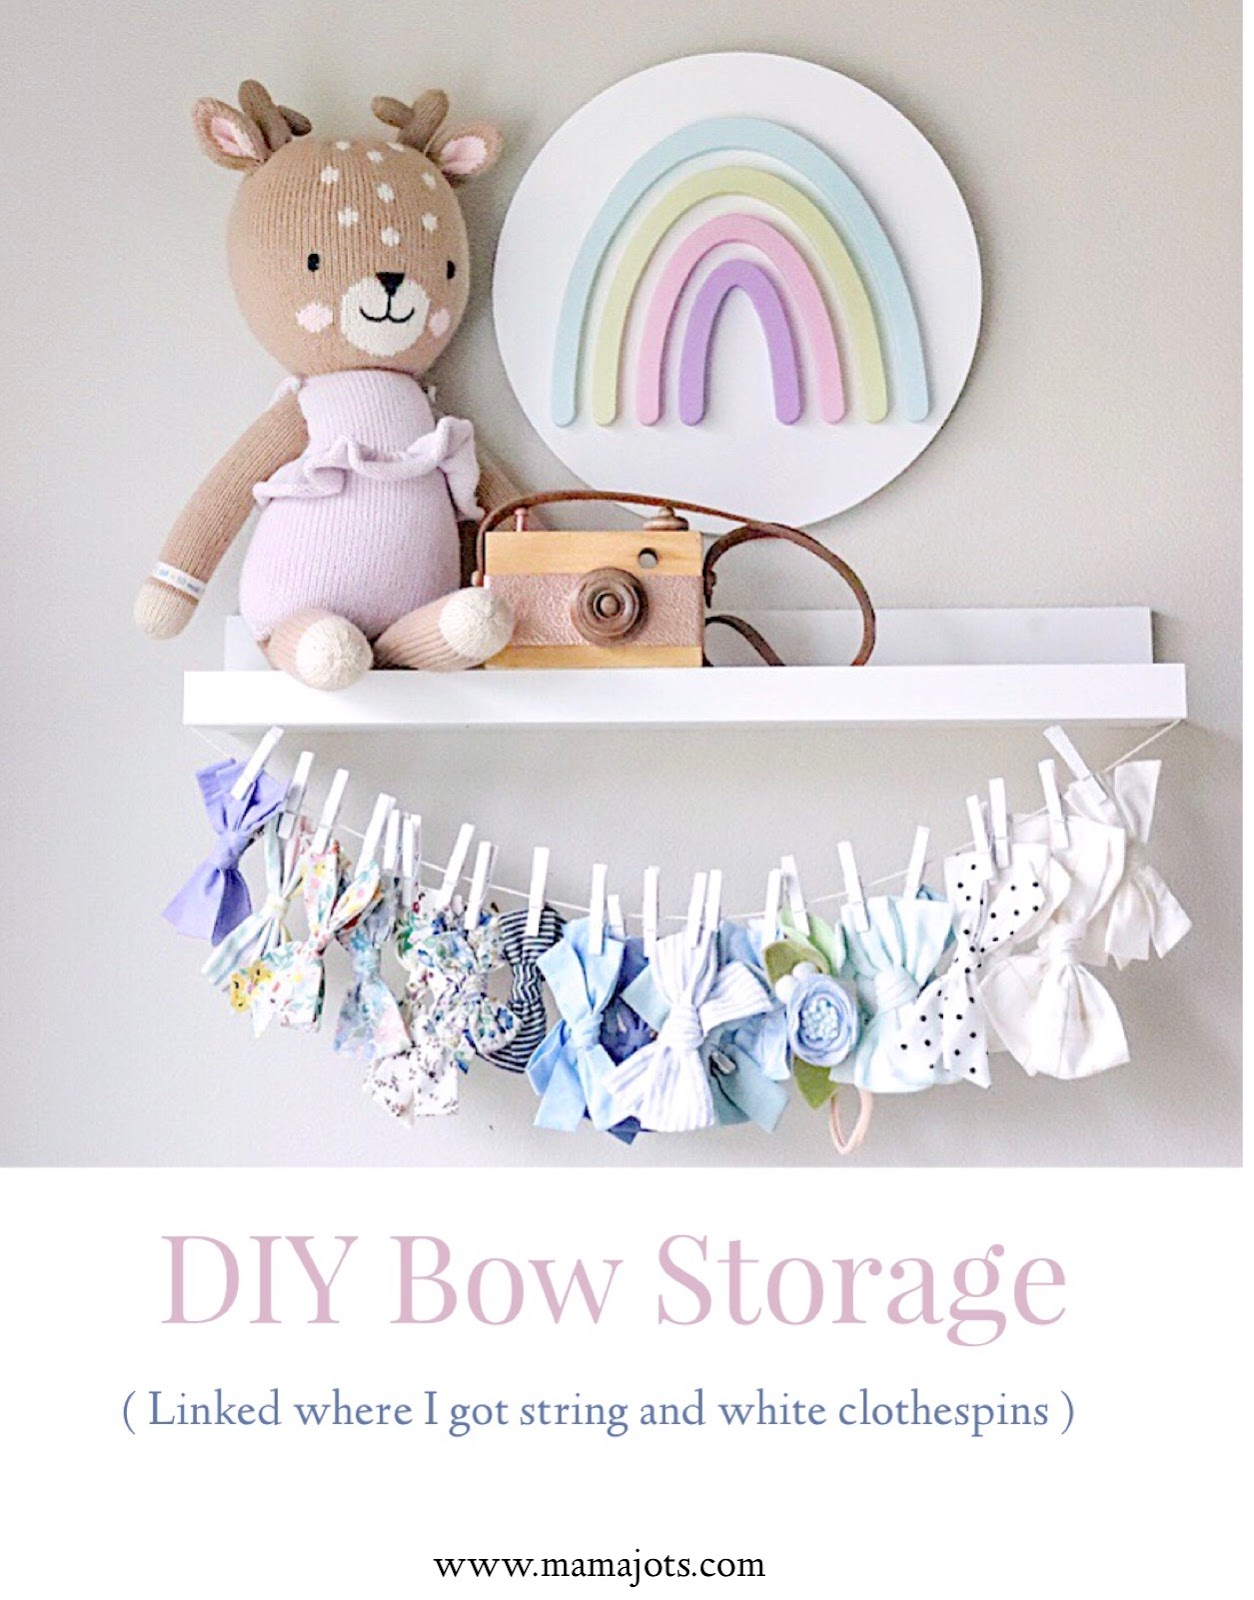 DIY Bow Storage